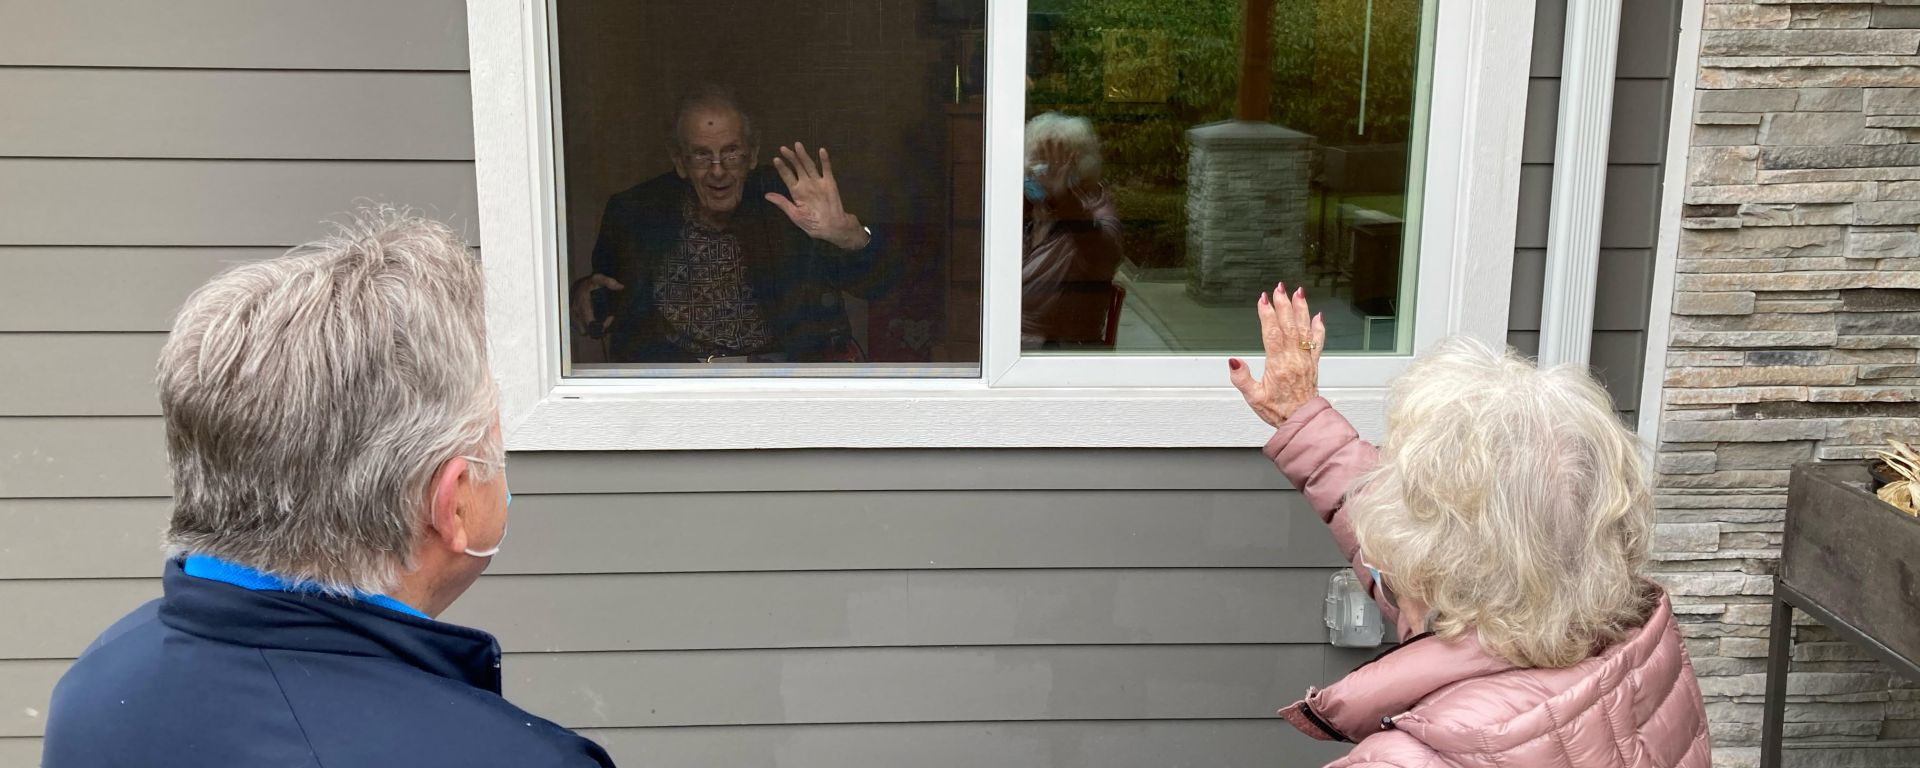 Bill and his neighbor look through the window at a loved one